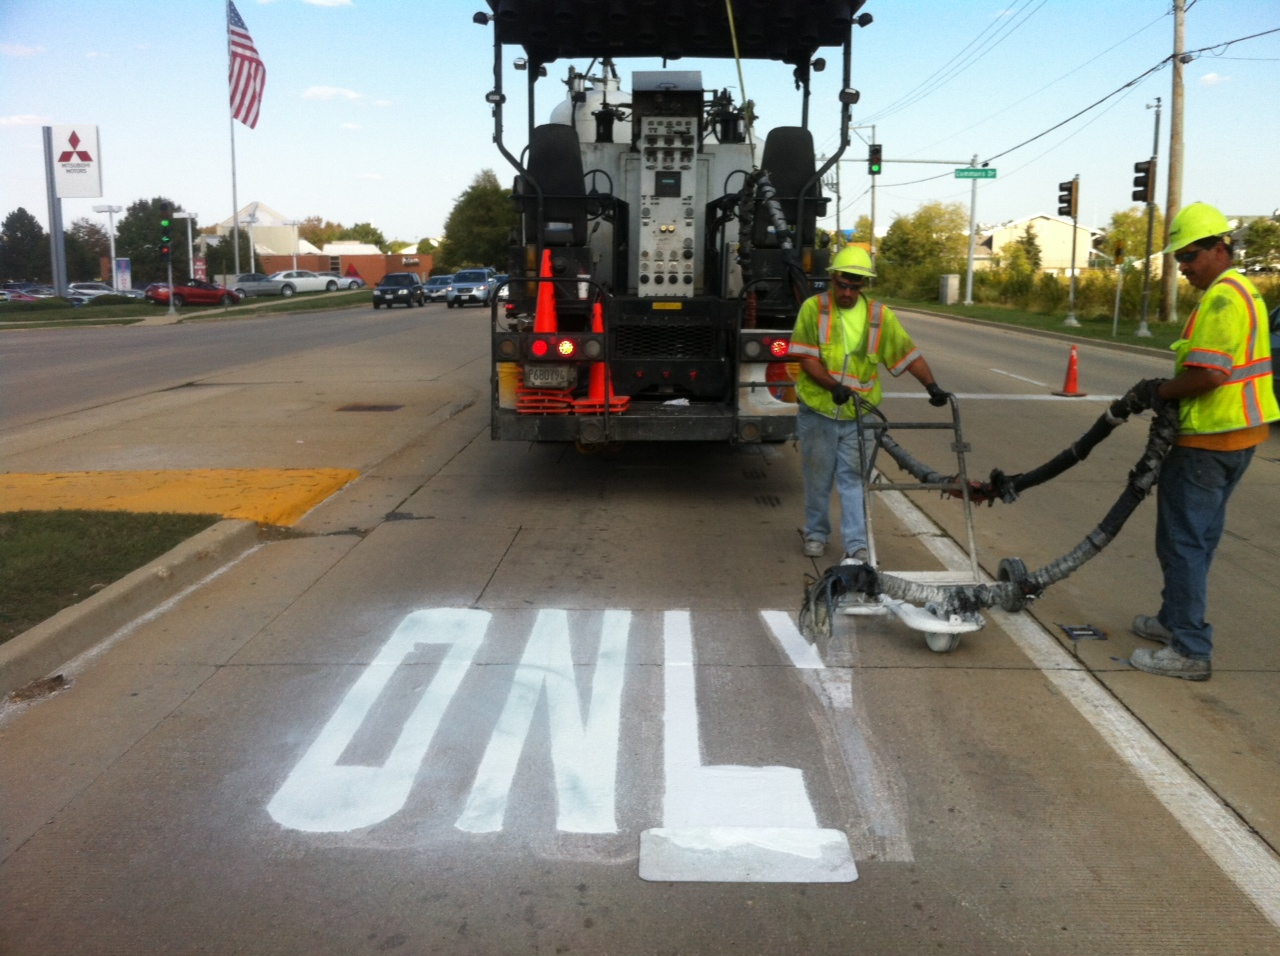 Image of RoadSafe employees painting a turn lane.